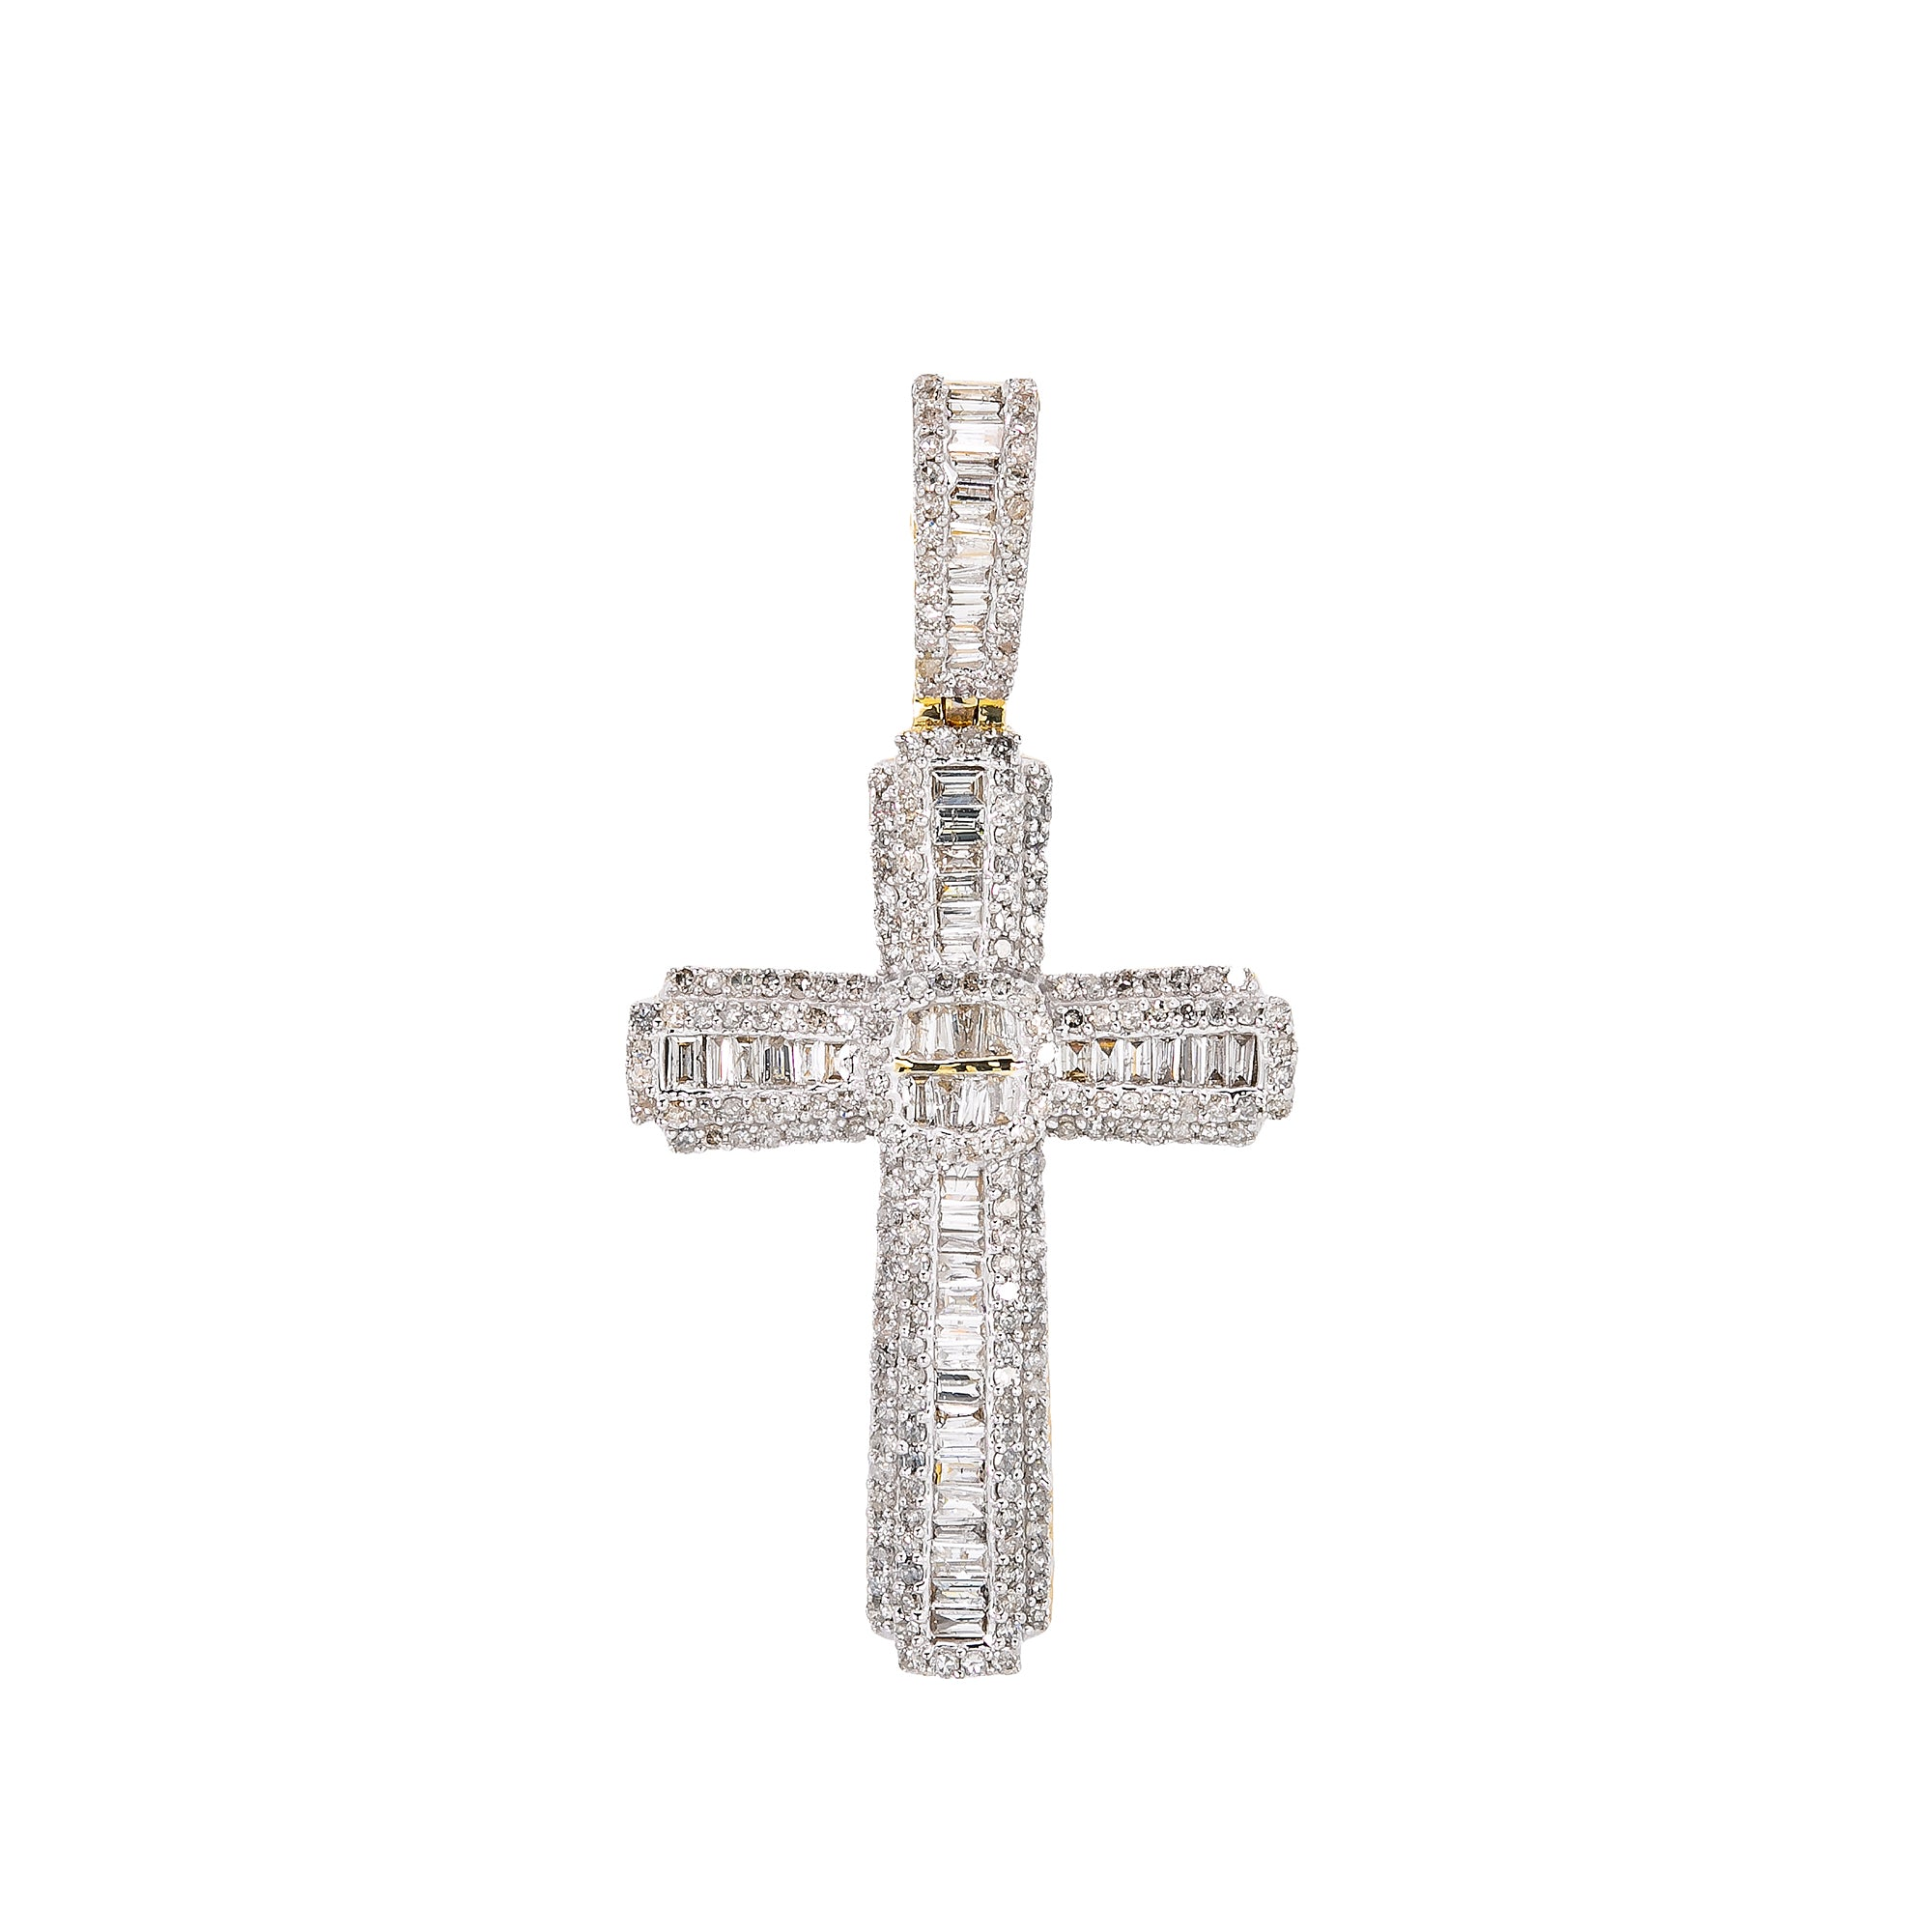 Unisex 14K Yellow Gold Cross Pendant with 1.08 CT Diamonds